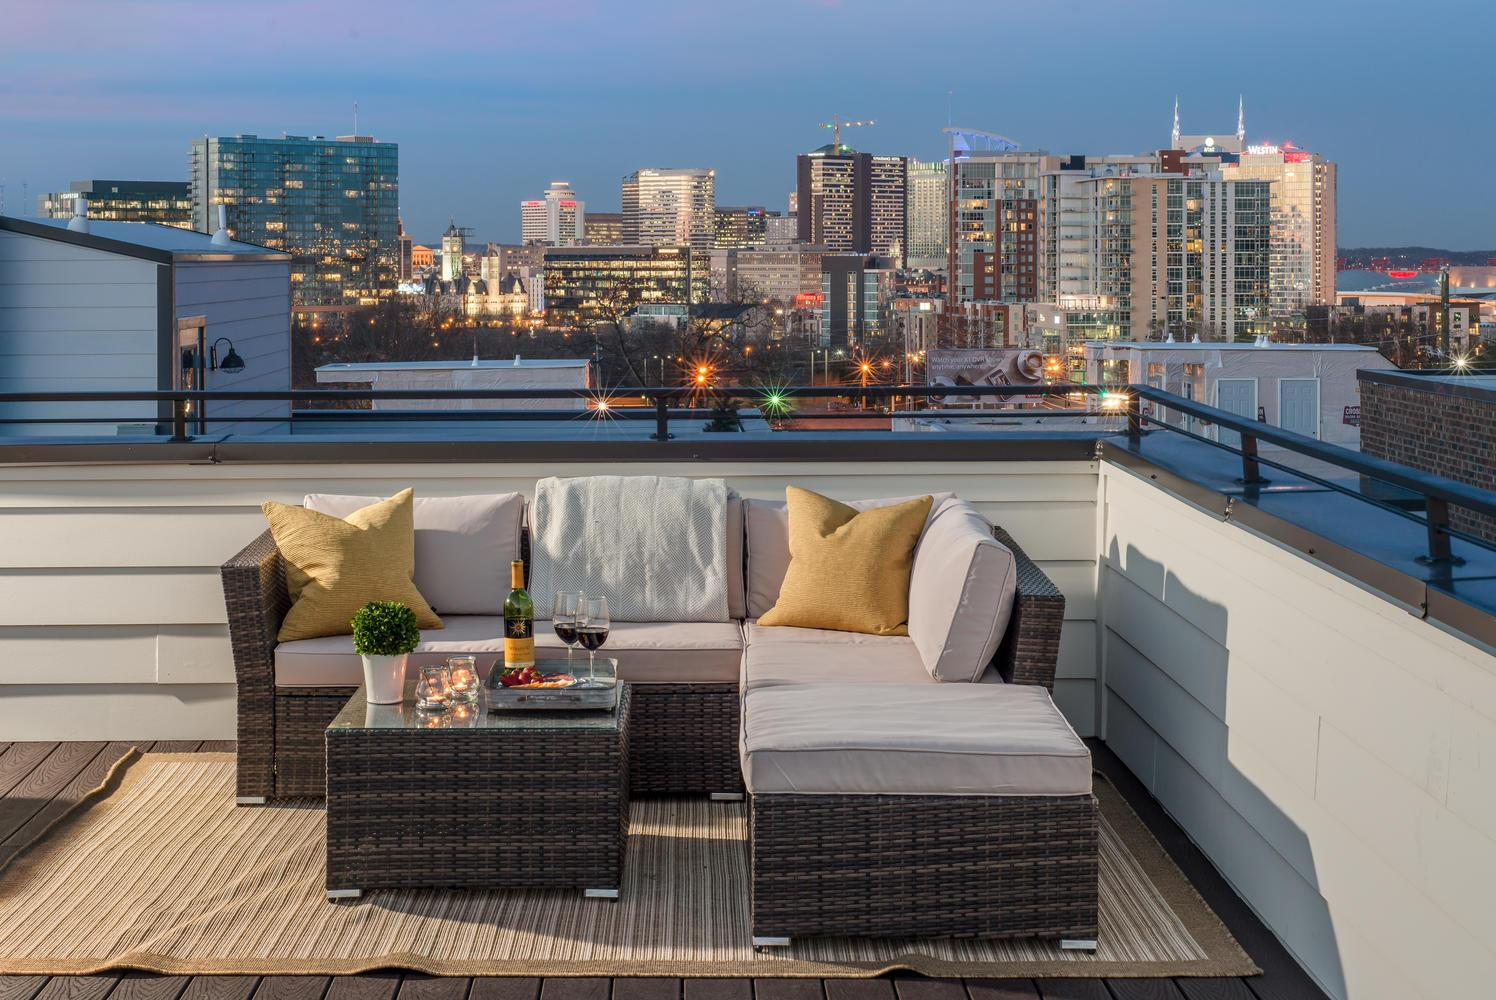 Welcome to Nashville! Take in the Batman building, the Pinnacle building, Stadium, all from your private rooftop deck.